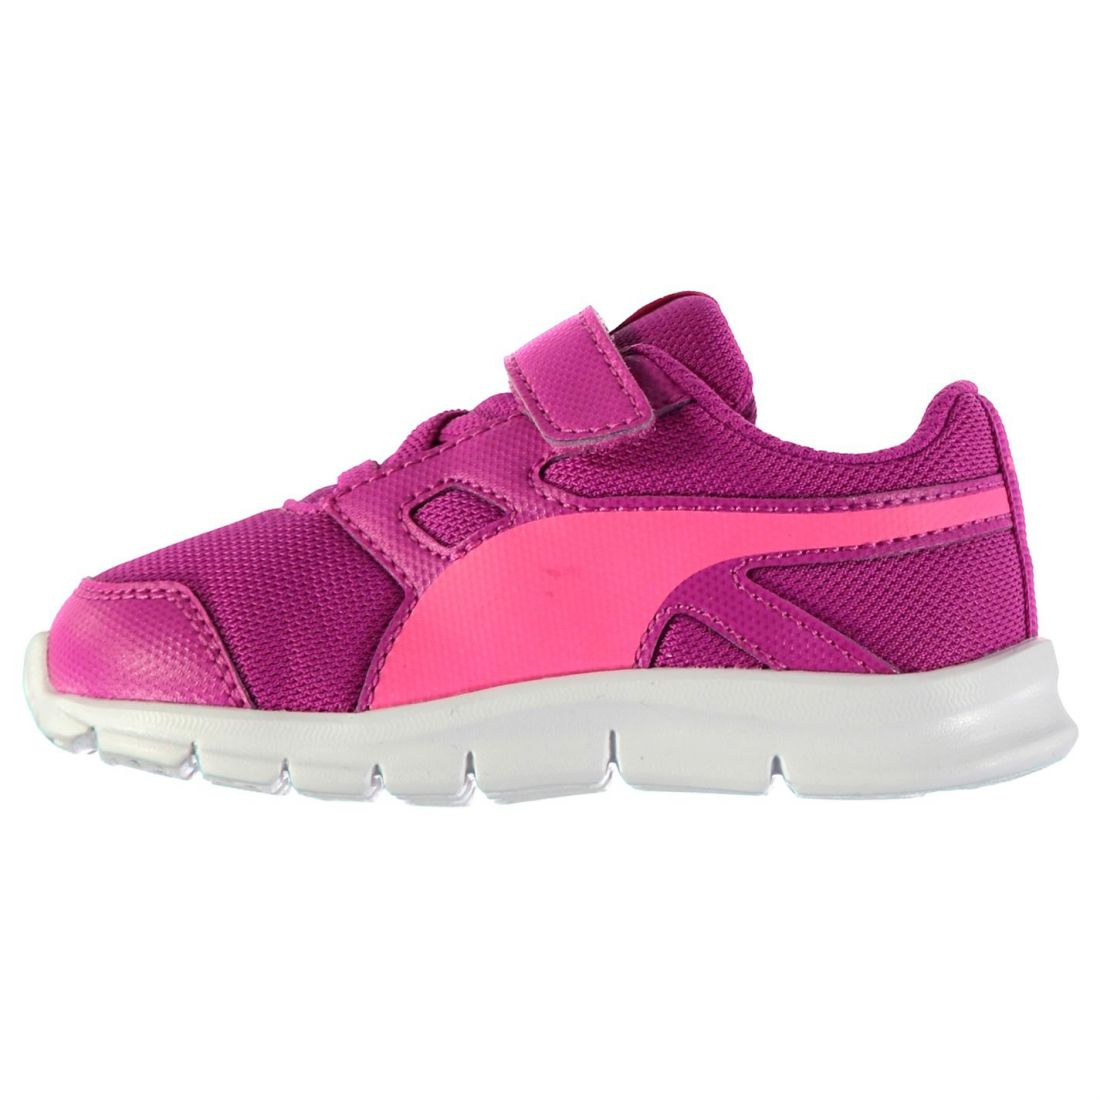 7657906f24f0 Details about Puma Kids Flexracer Trainers Runners Lace Up Shoes Breathable  Infant Girls